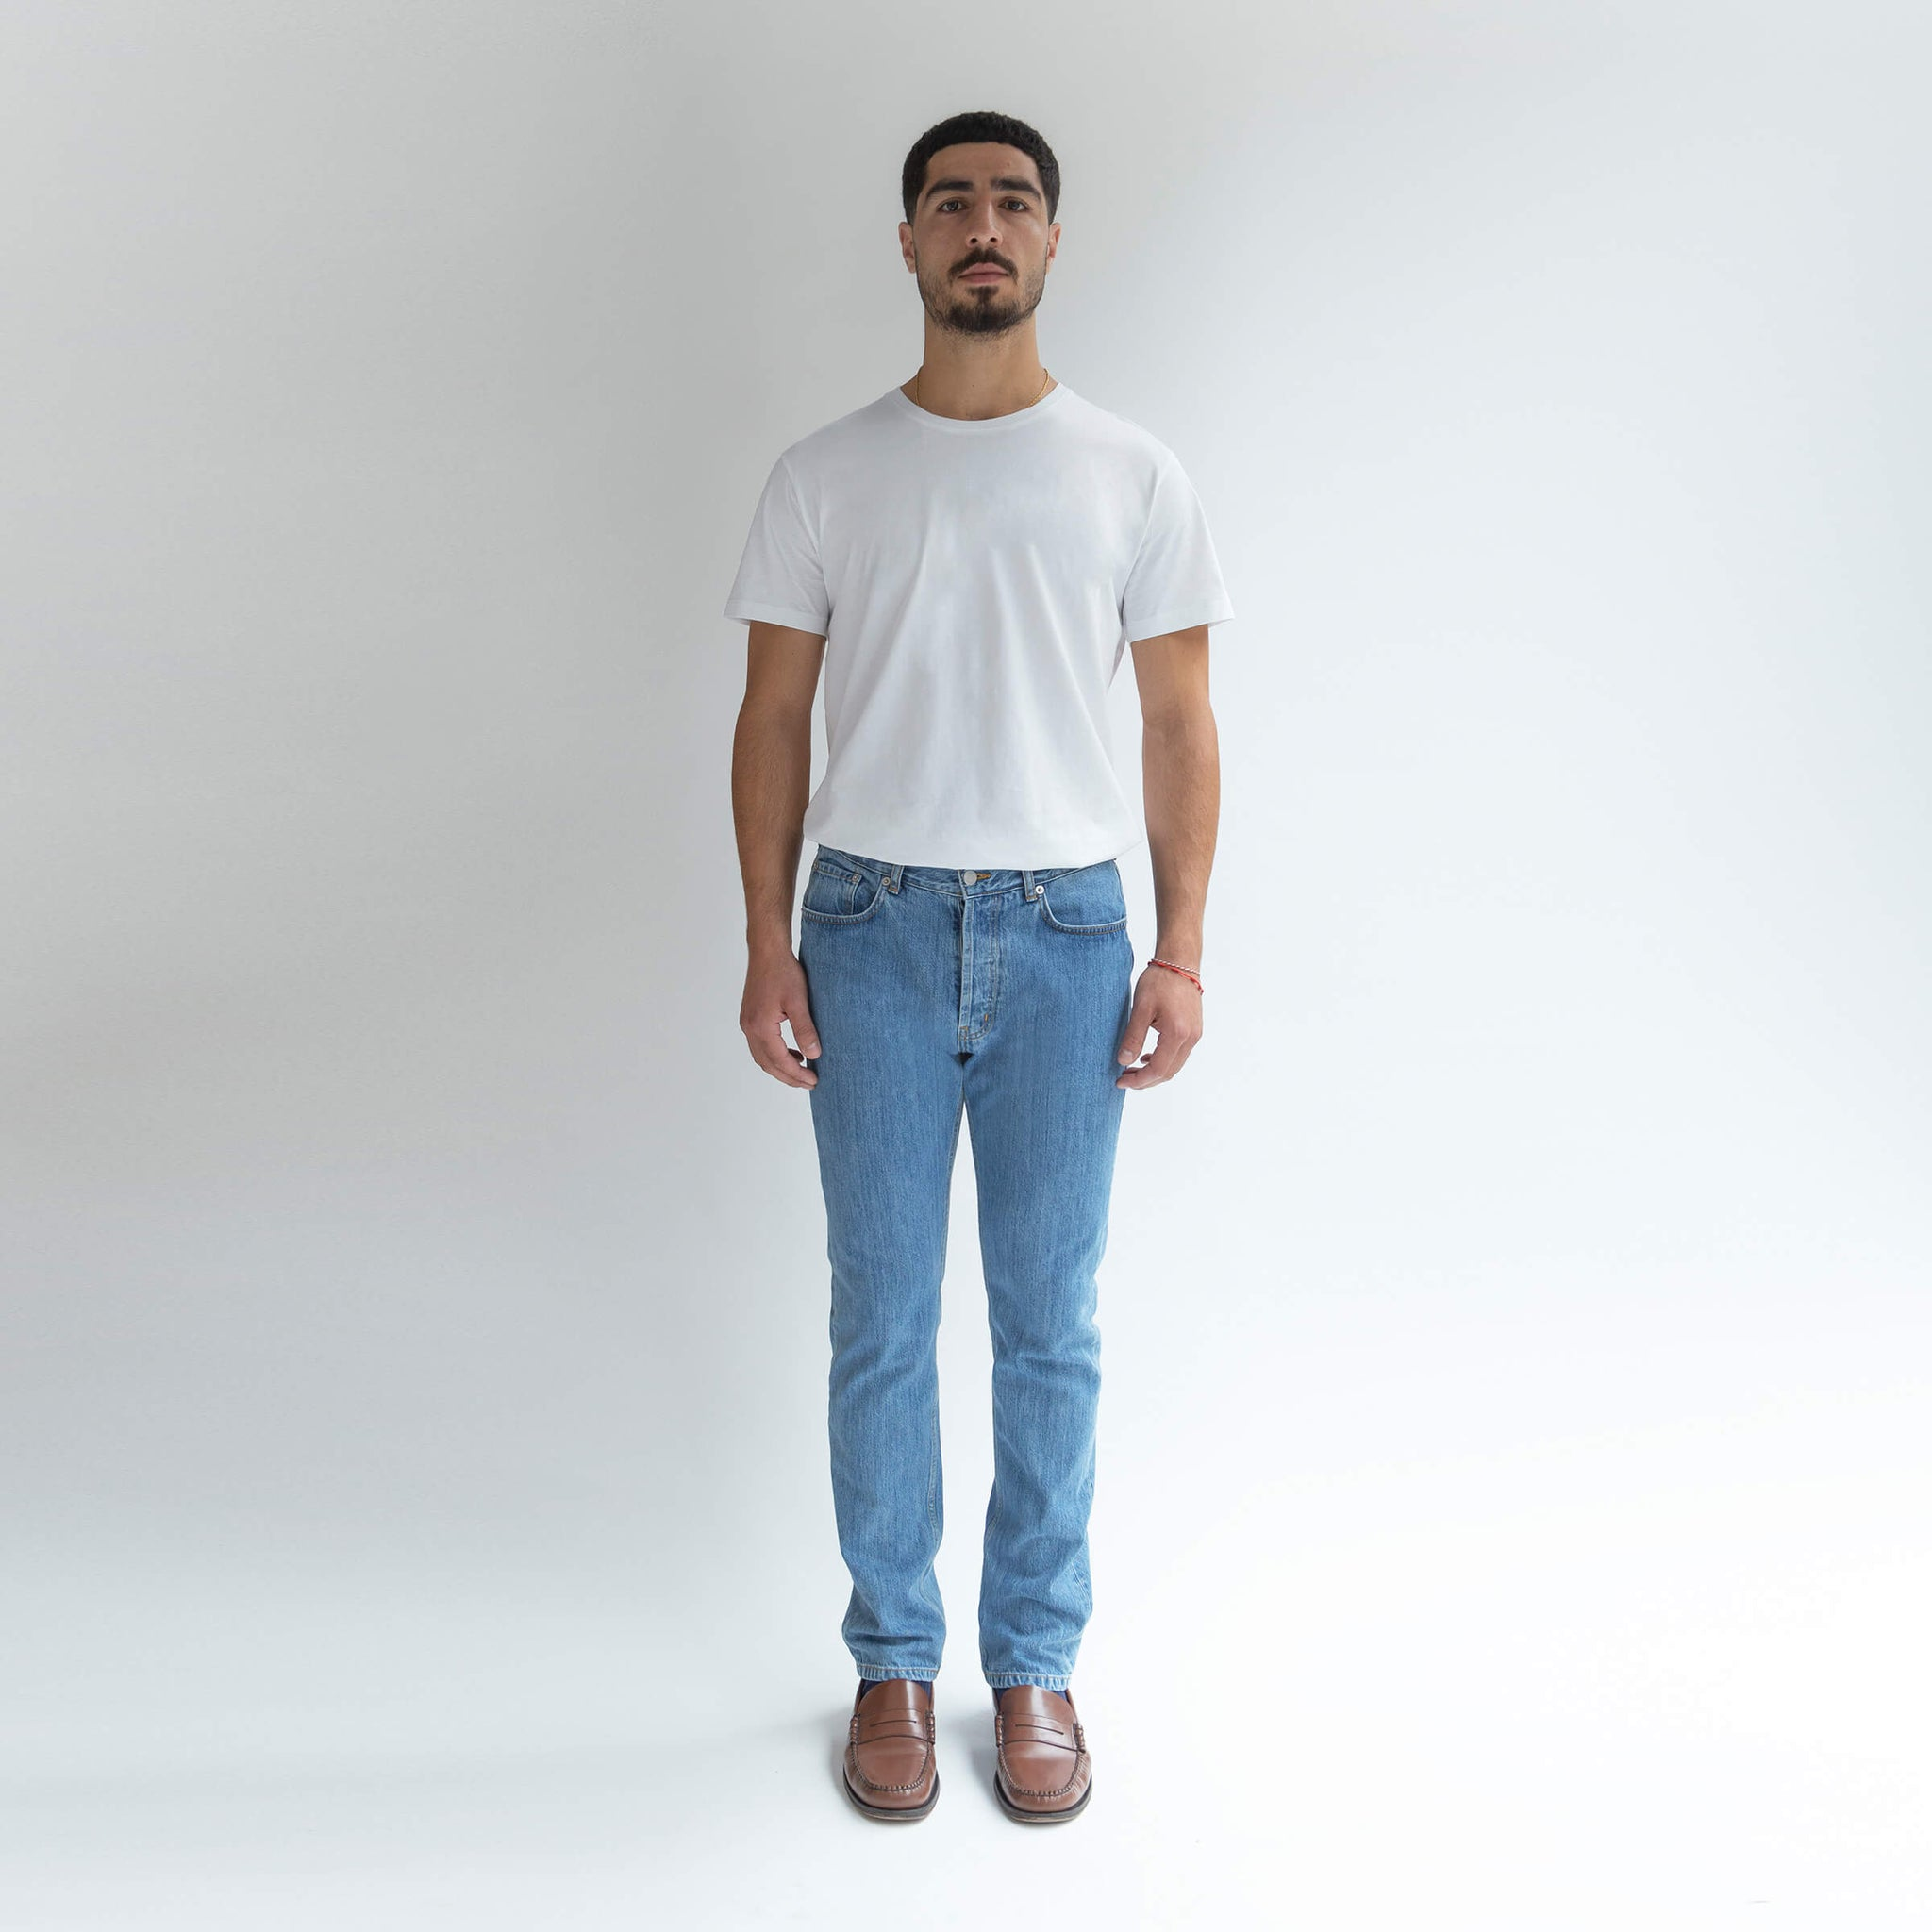 Straight Jeans in Denim made from organic cotton - Front Ment